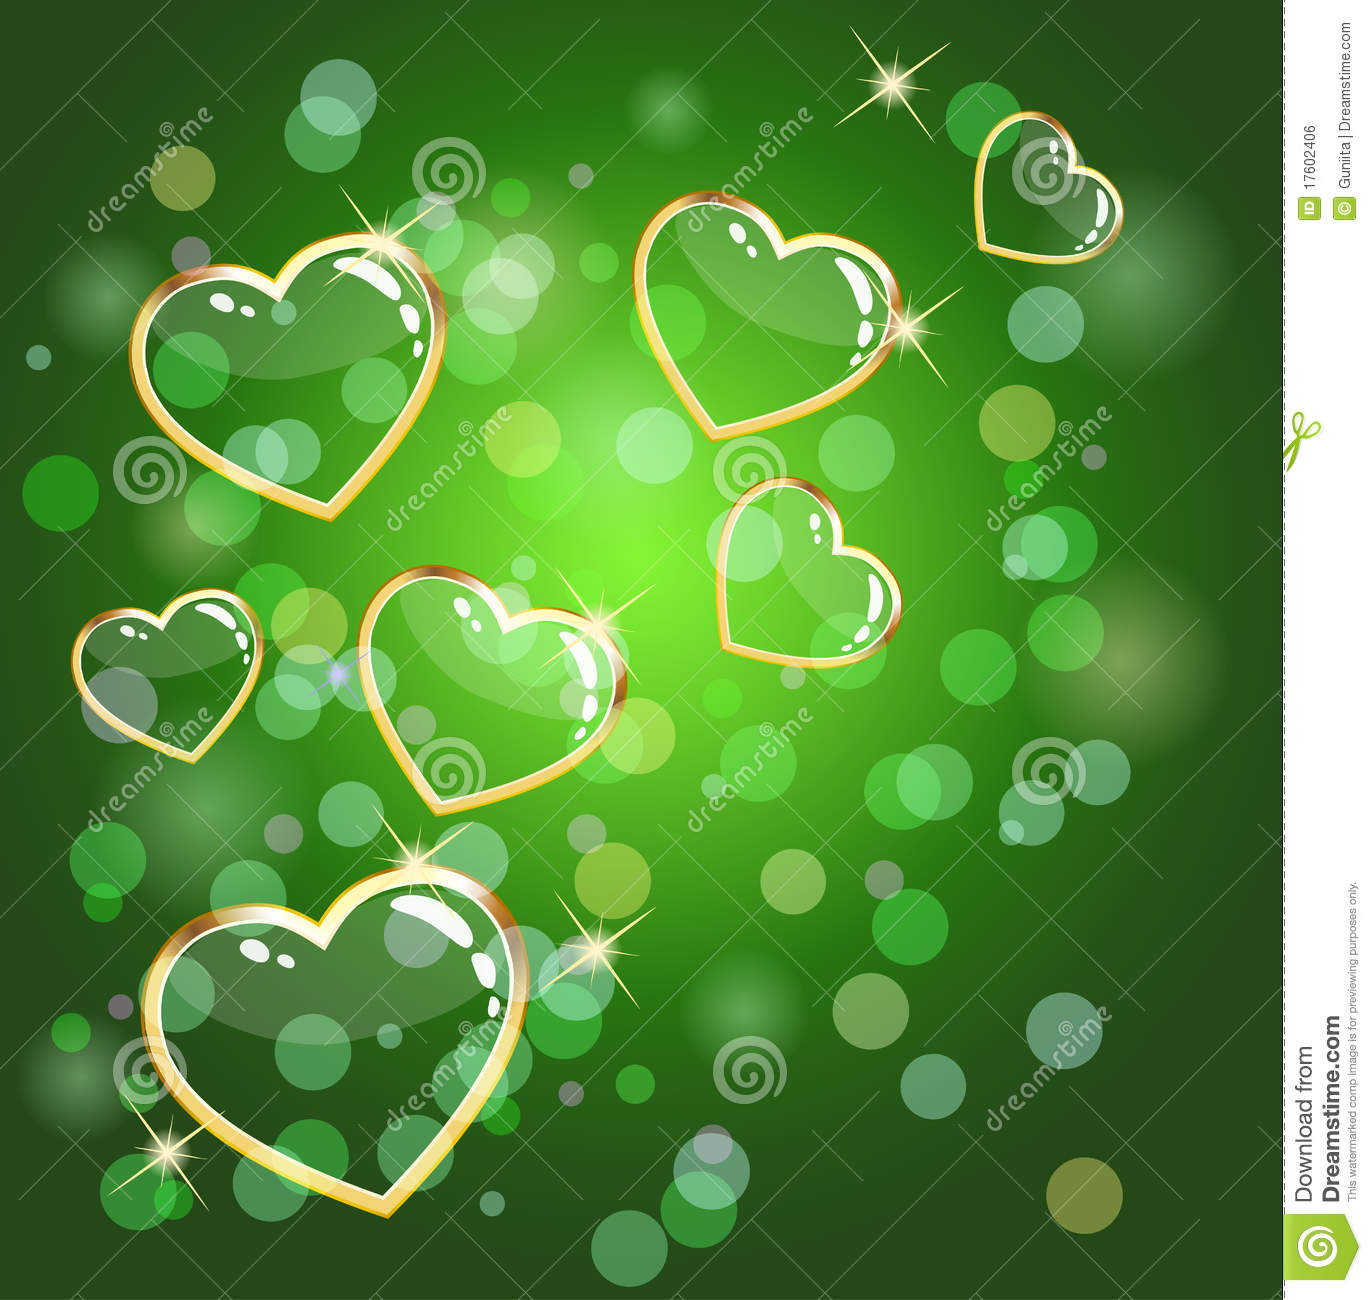 green hearts background - photo #22